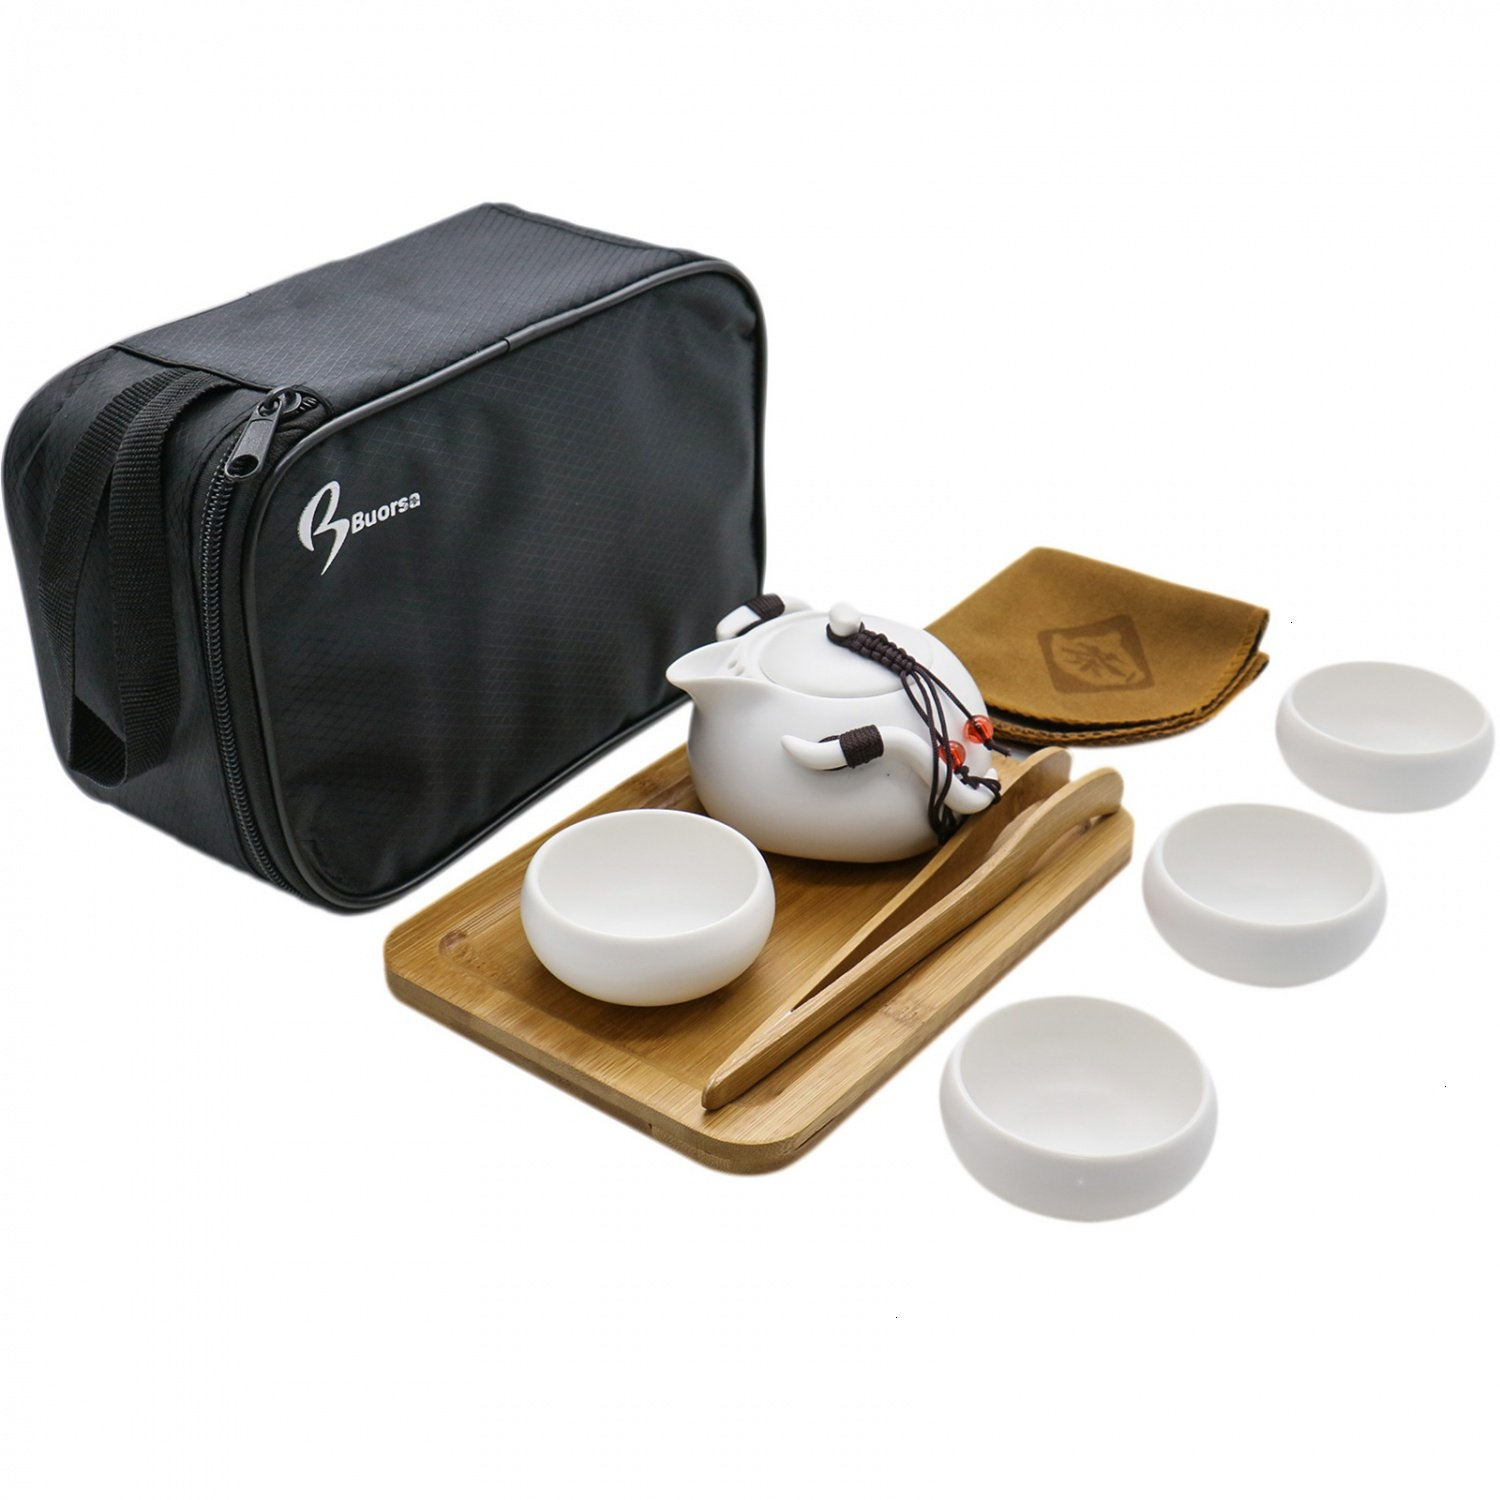 Buorsa 8 Pcs Portable Travel Tea Set Vintage Chinese / Japanese Style Porcelain Handmade Kung Fu Tea Set with a Travel Bag (4 Cups)